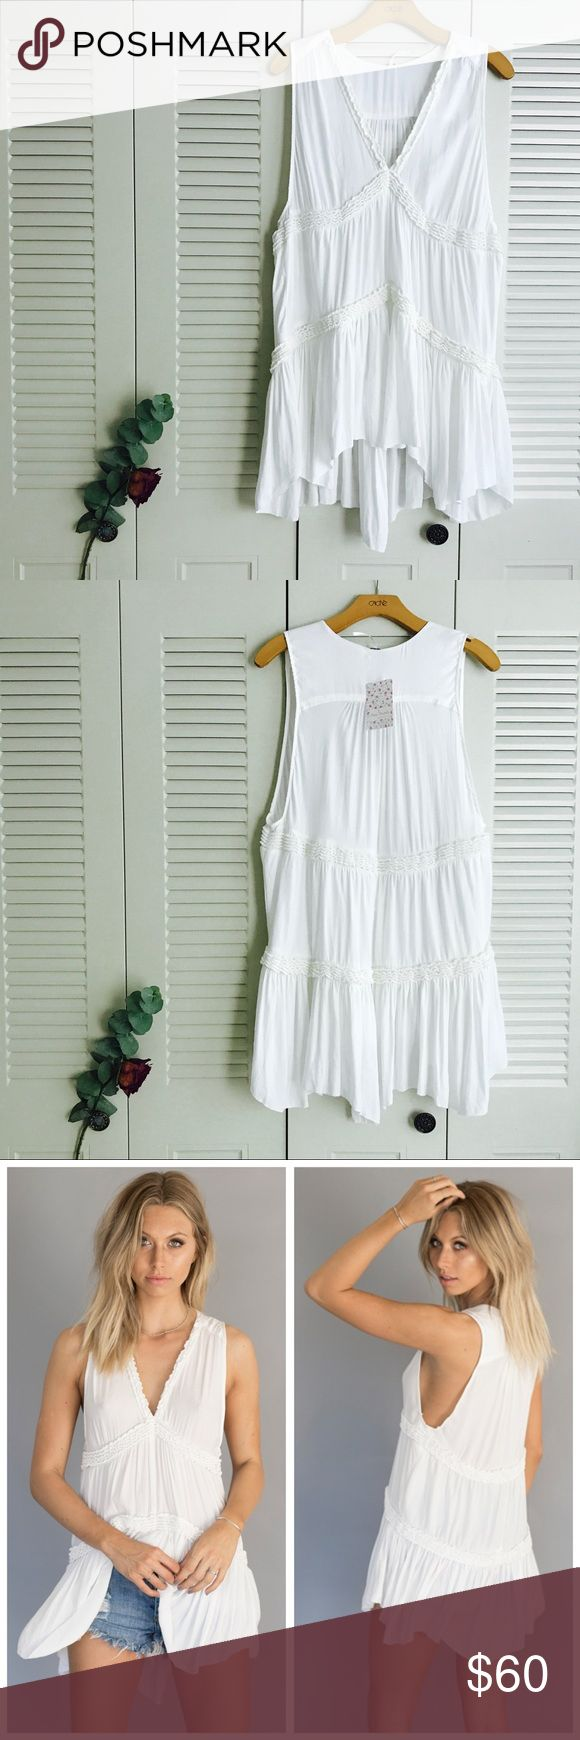 FP White Tunic Fun and boho, this white tunic top from Free People features a flowy and sleeveless styles, with layered gathered ruching.  Slightly sheer - pairs perfectly with your favorite bralette.  Can be worn as a dress on someone who is shorter.  Brand new with tags! Free People Tops Tunics